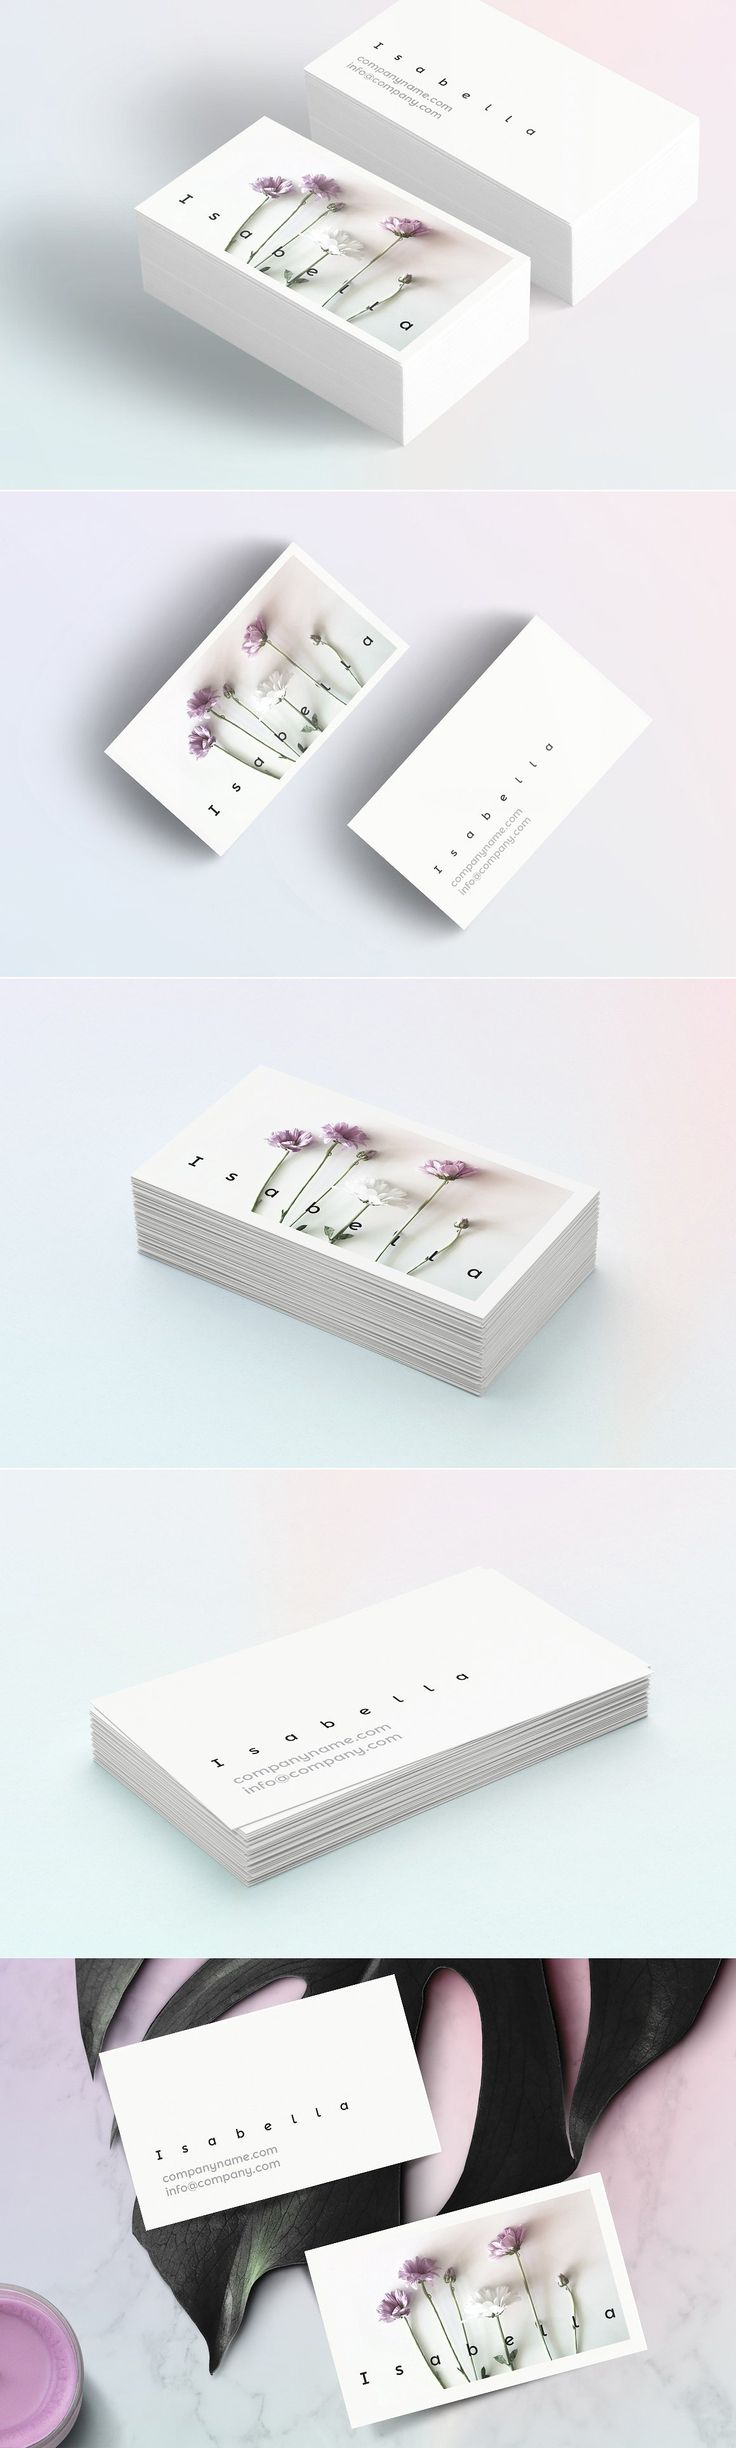 Isabella-floral business card by Polar Vectors on Creative Market